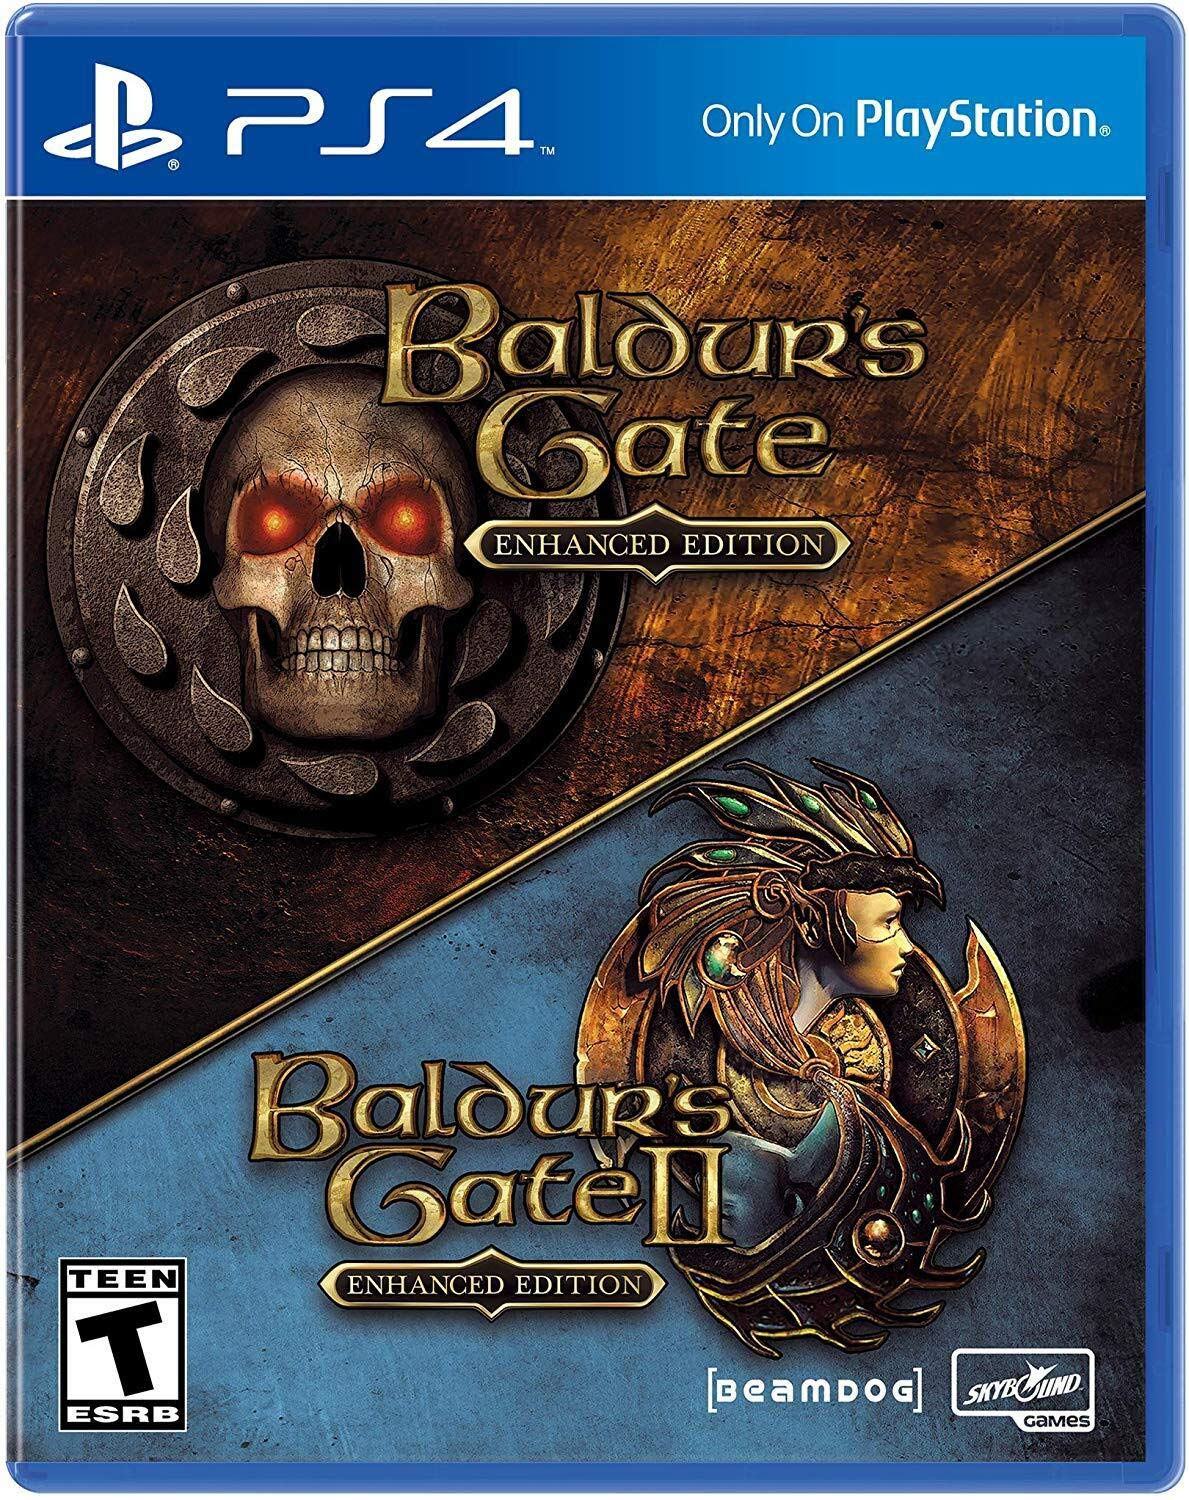 Baldur's Gate: Animer and price revision Enhanced Edition PlayStation - 4 Popular products